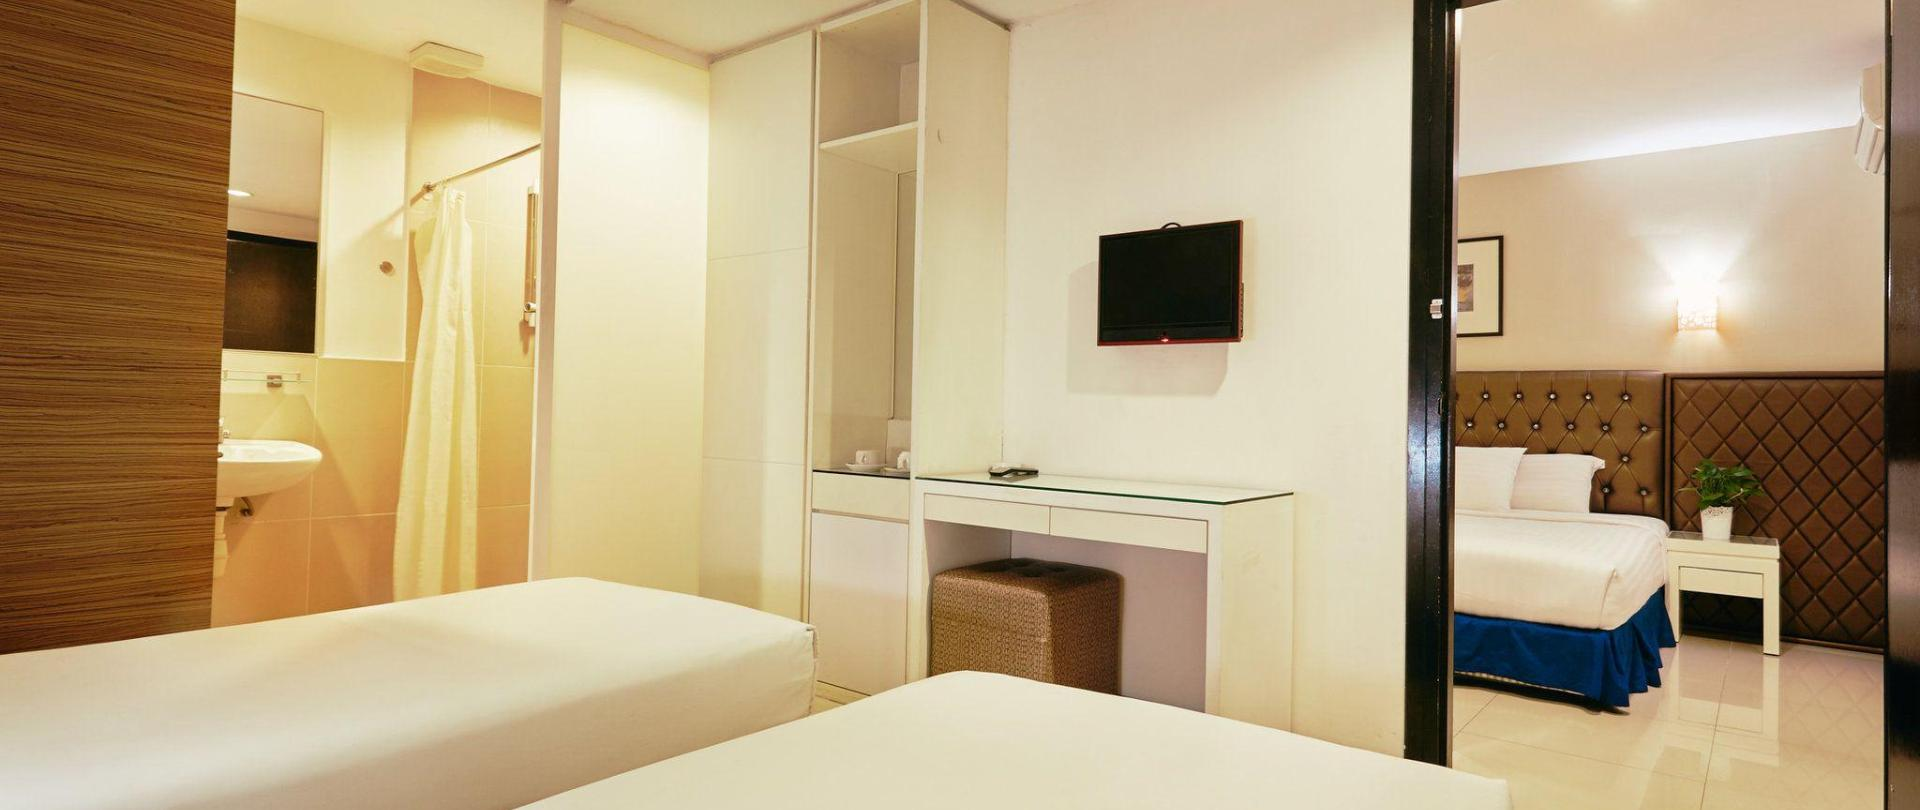 family-sute-4-single-bed-connecting-room-2.jpg